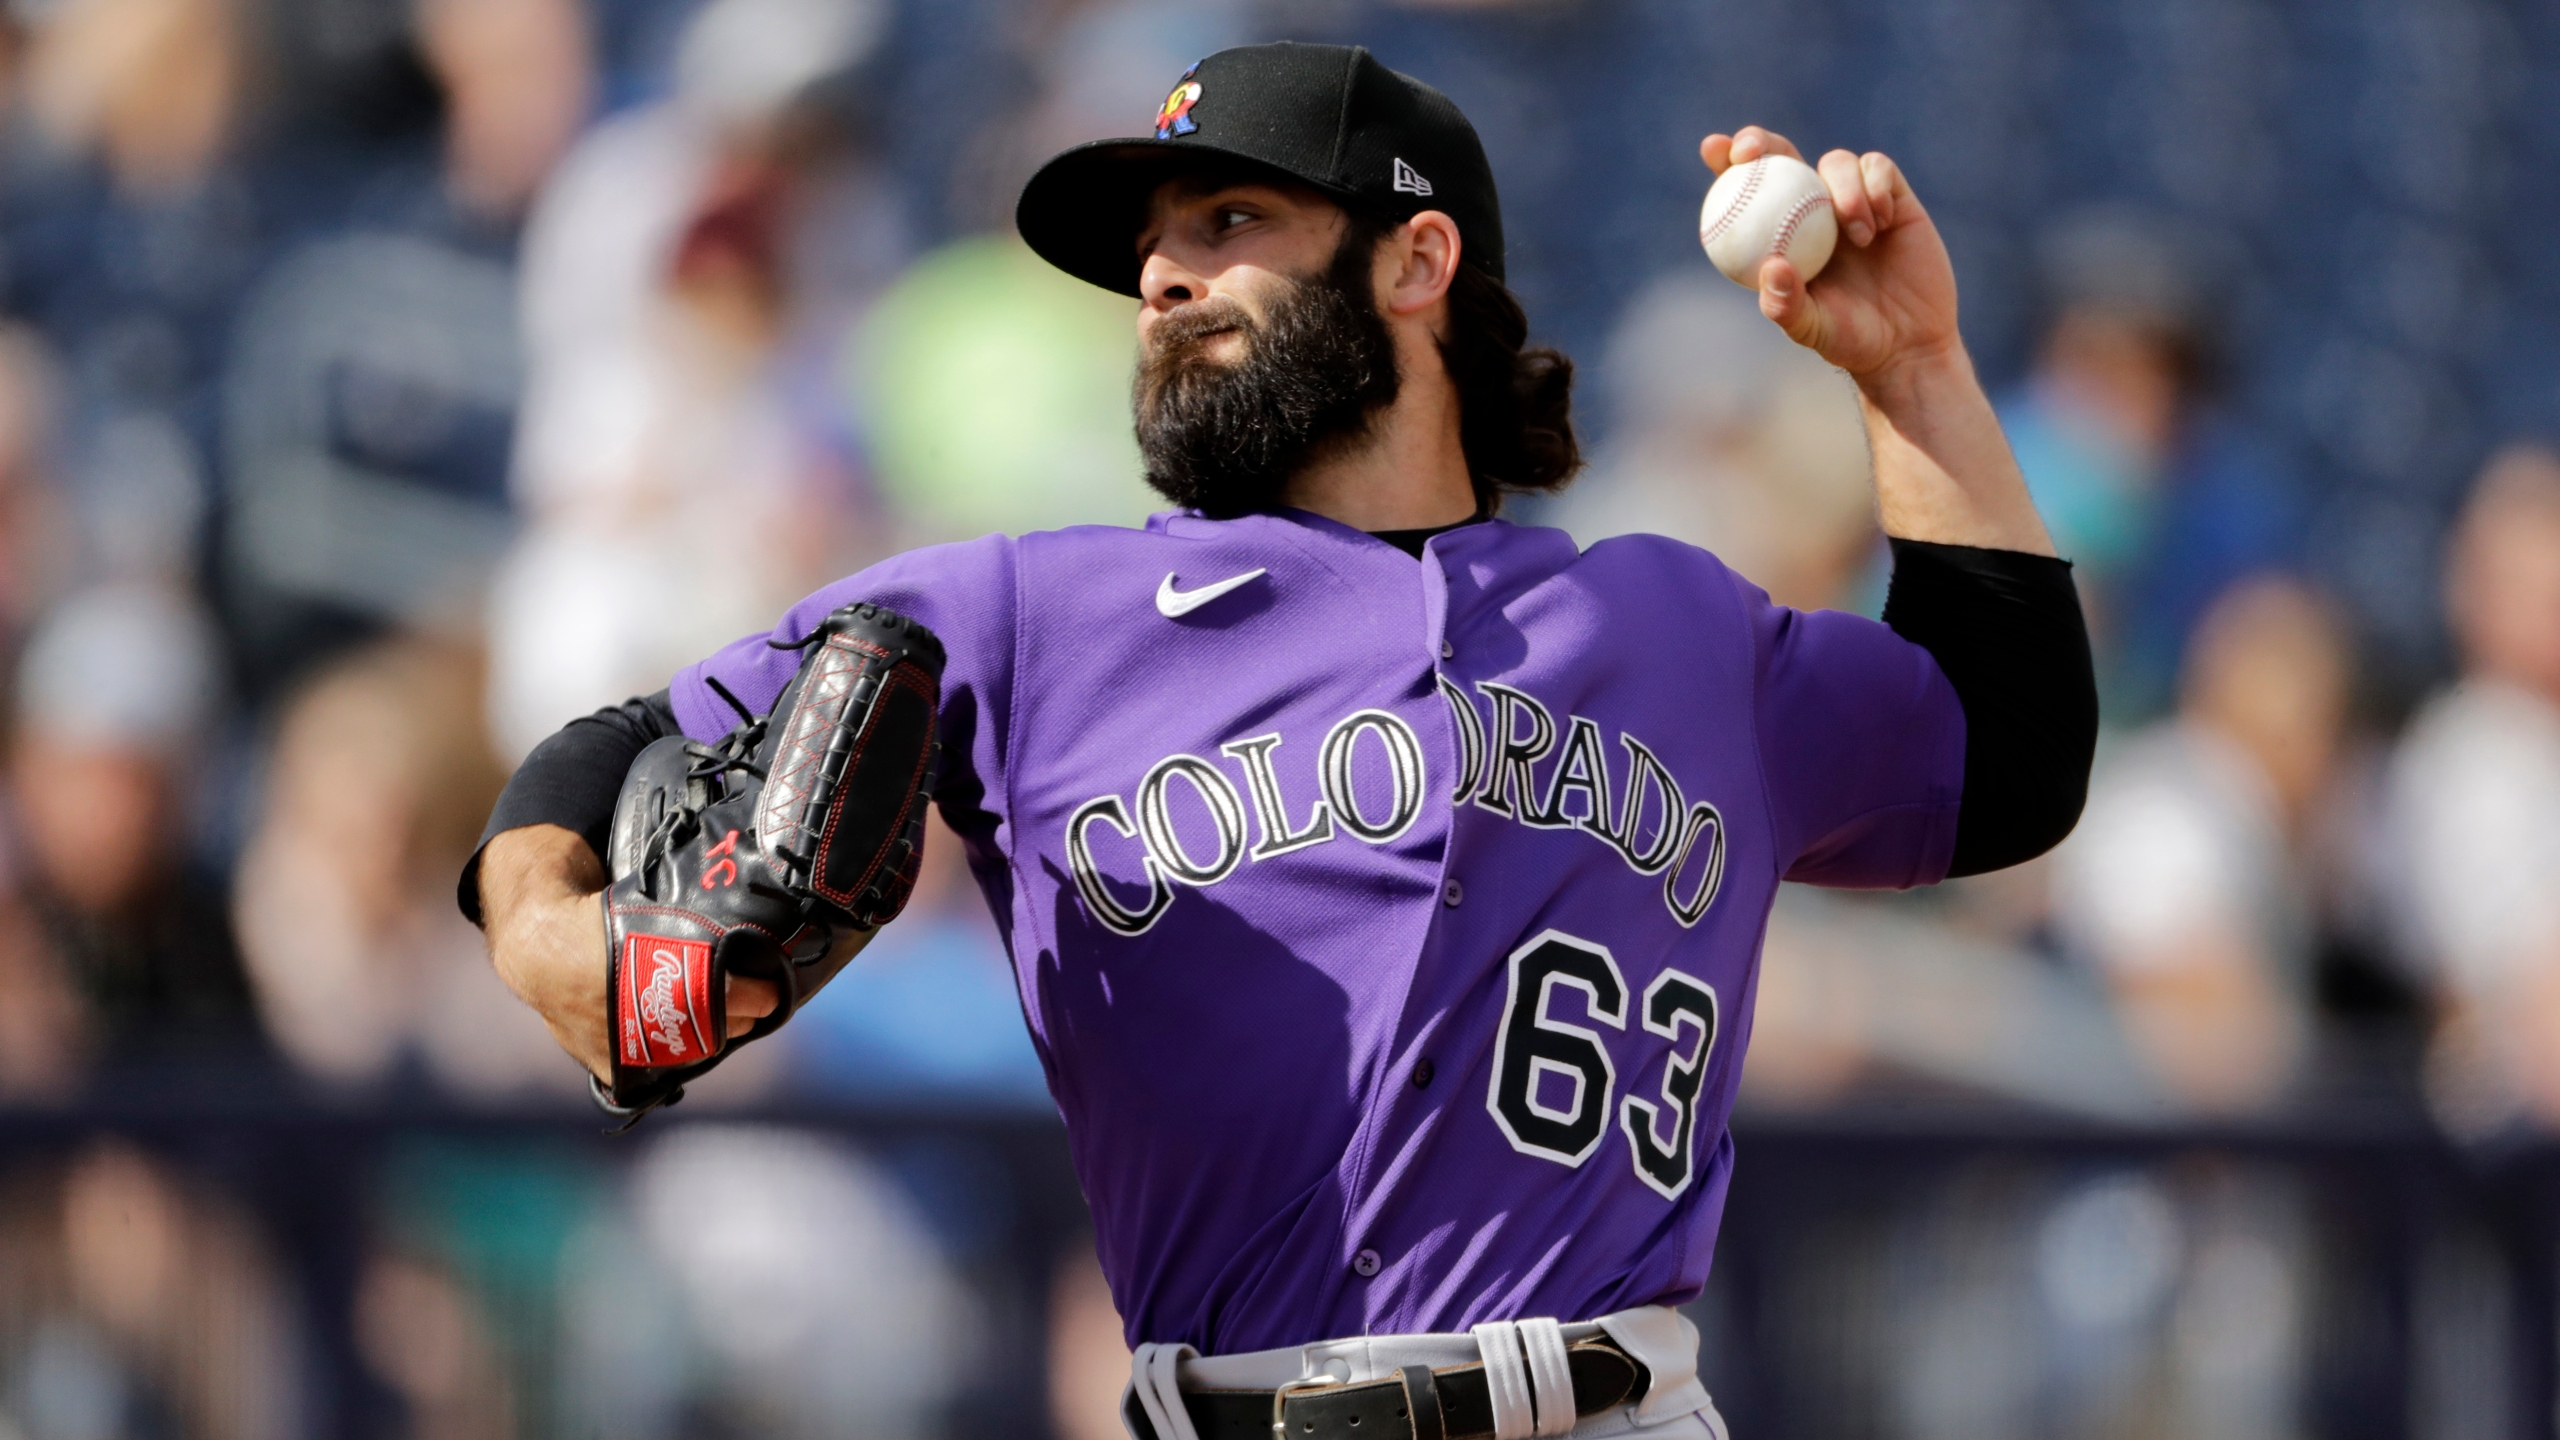 Colorado Rockies pitcher Tim Collins throws during the fifth inning of a spring training baseball game against the Seattle Mariners Monday, March 2, 2020, in Peoria, Ariz. (AP Photo/Charlie Riedel)